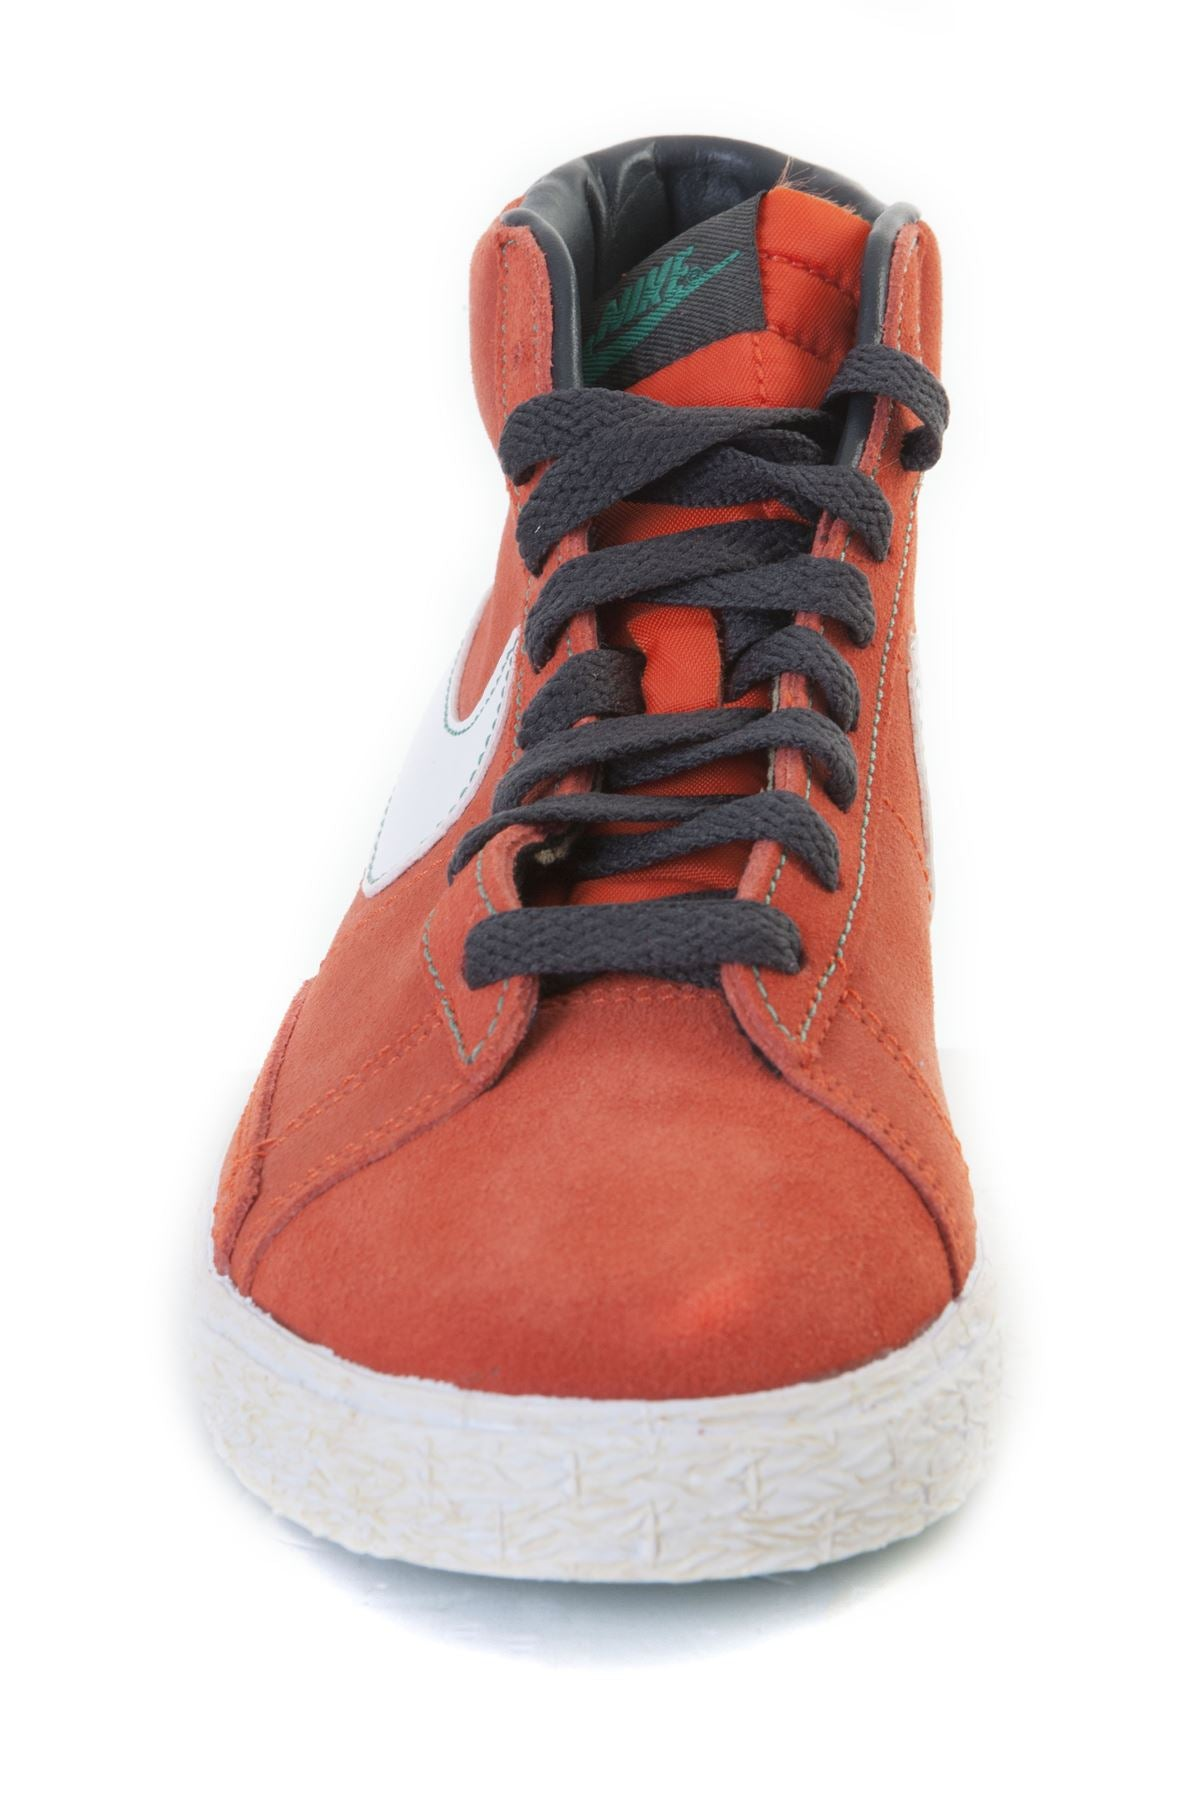 Nike Blazer Mid Vantage (PS) Orange/White 539931 800 Boys UK 1-13